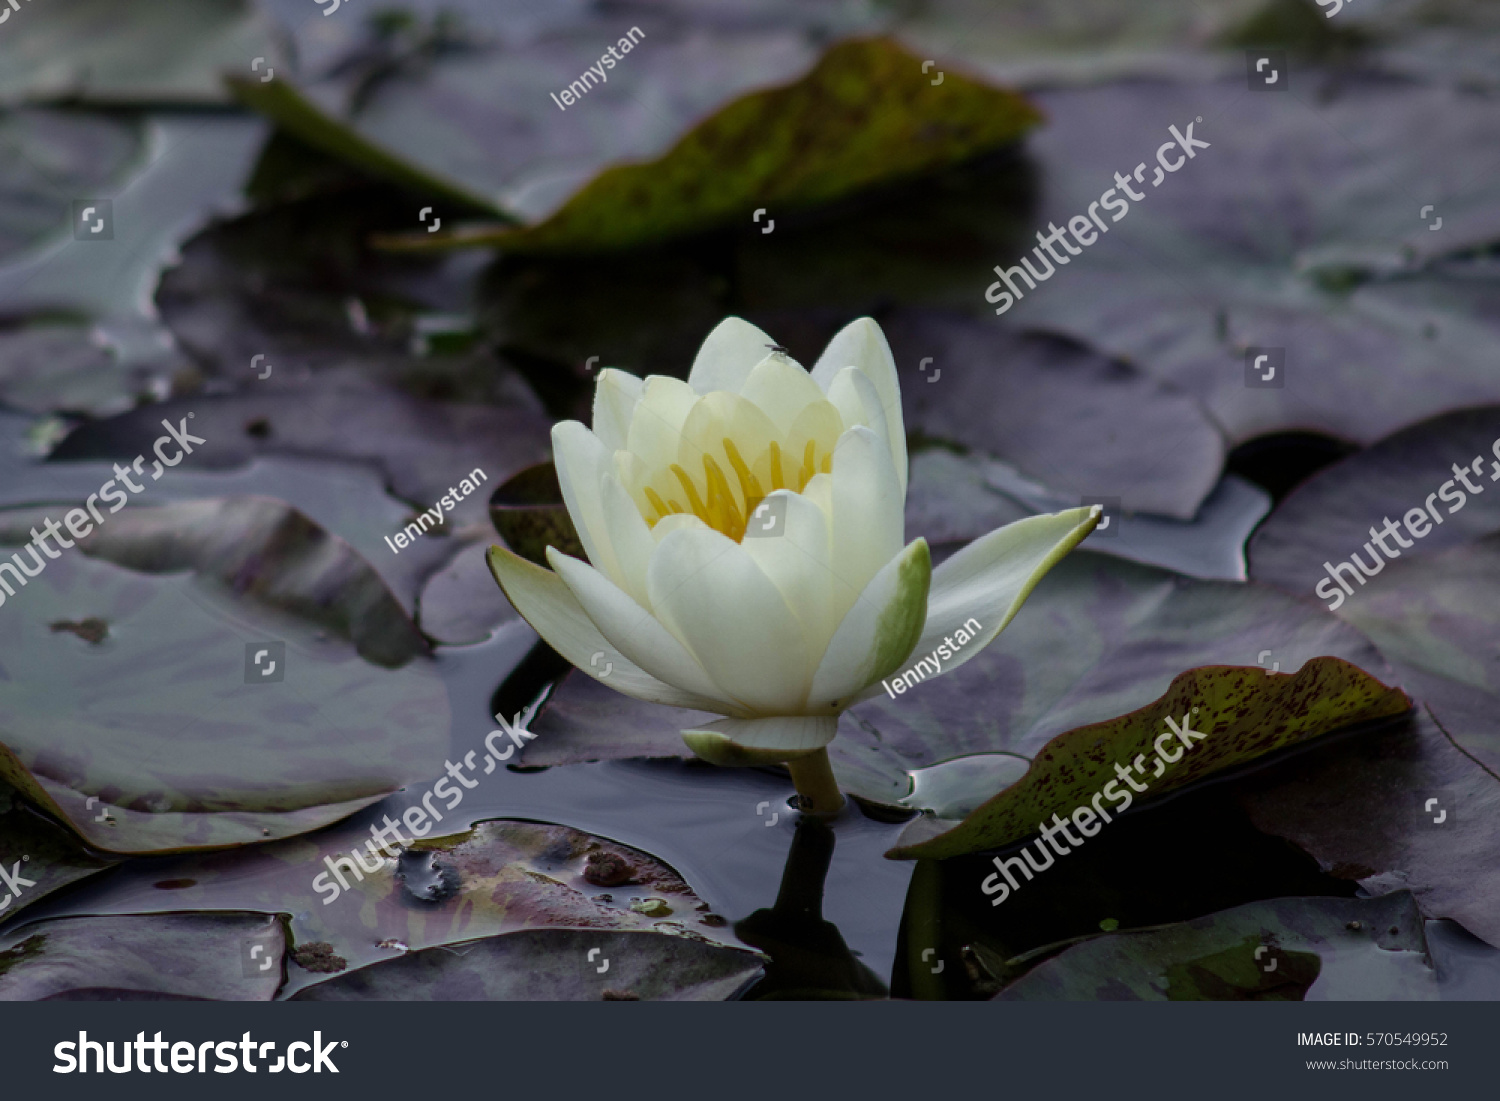 stock-photo-white-water-lily-nymphaea-al